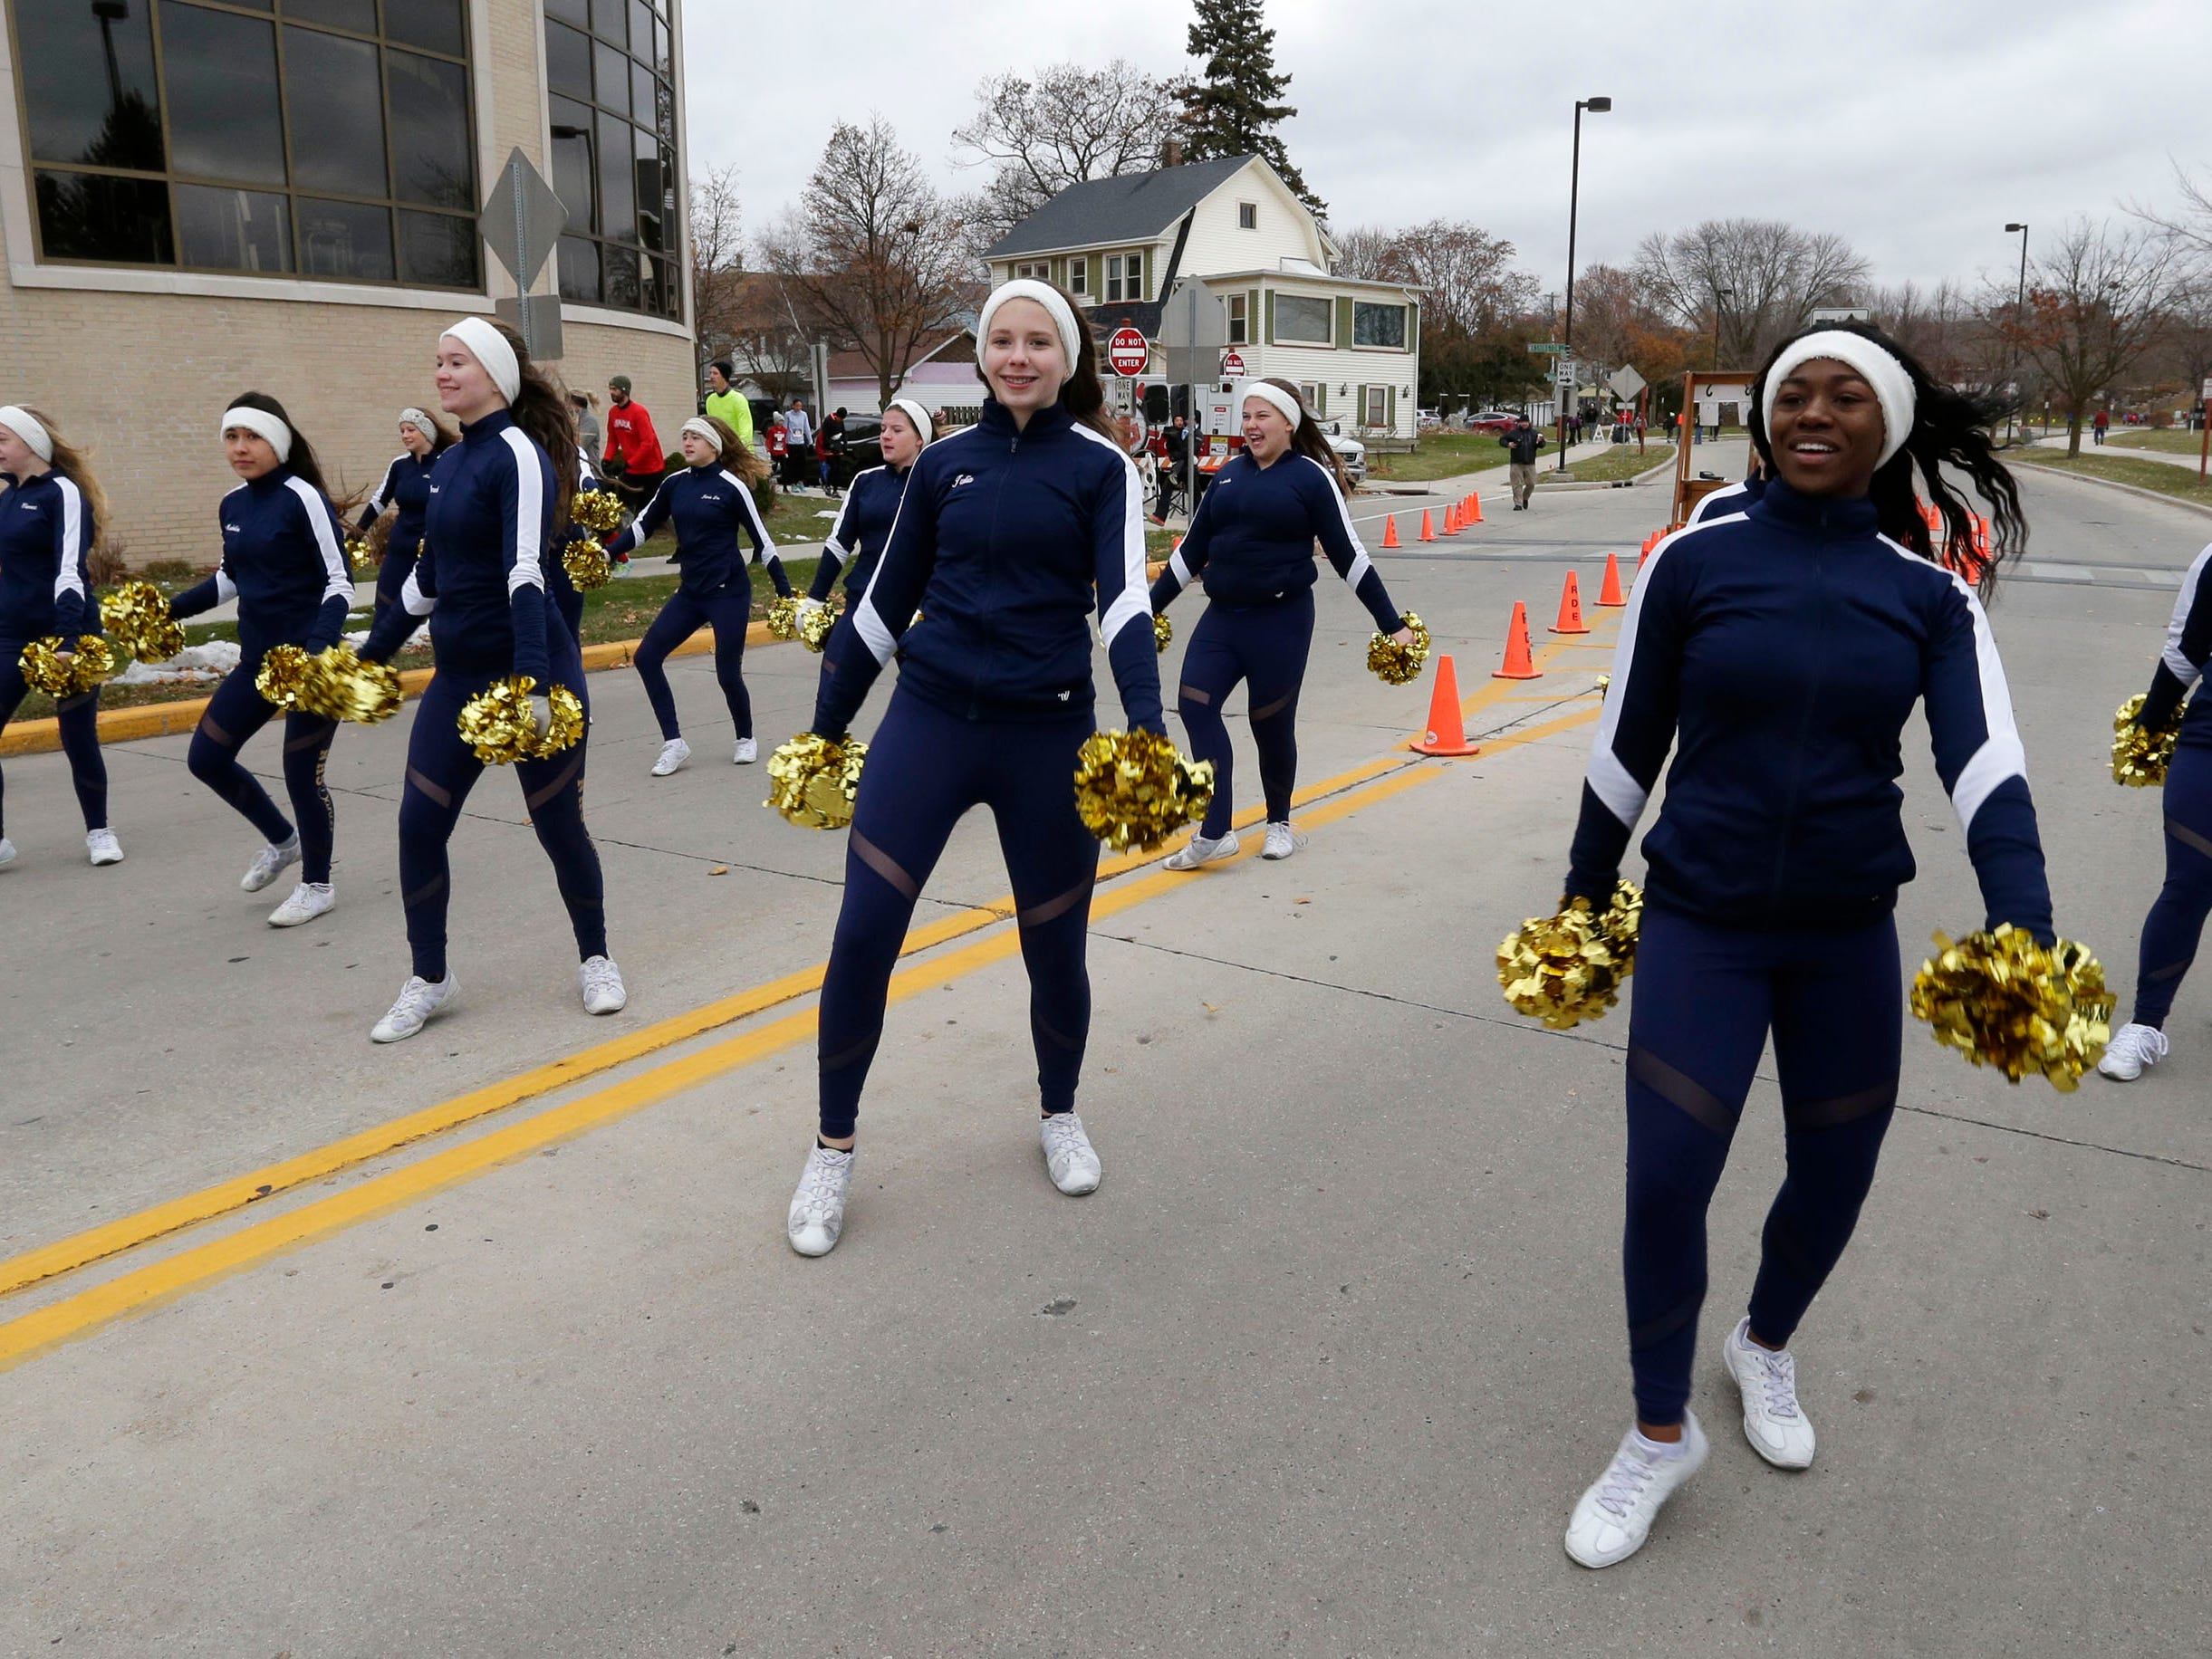 The Sheboygan North Dance team warms up the crowd before the Doug Opel Run for the Kids, Thursday, November 22, 2018, in Sheboygan, Wis.